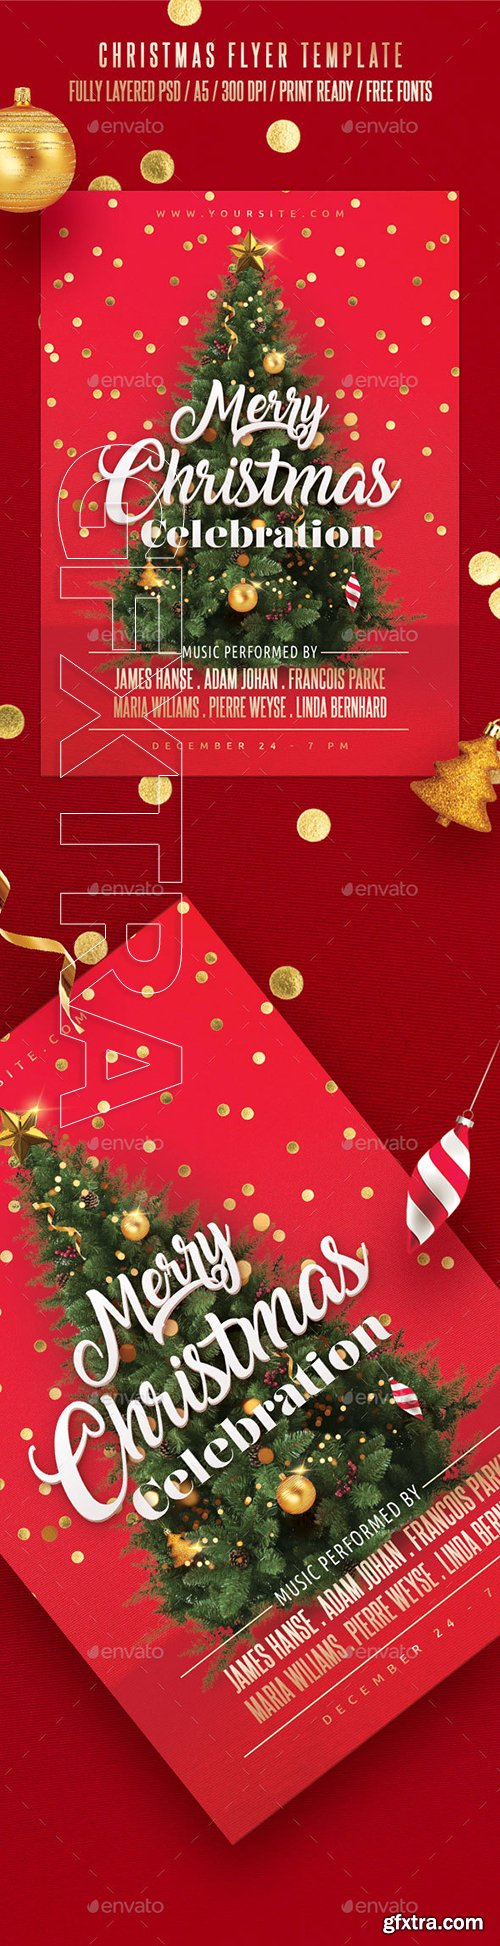 GraphicRiver - Christmas Flyer Template 22930718